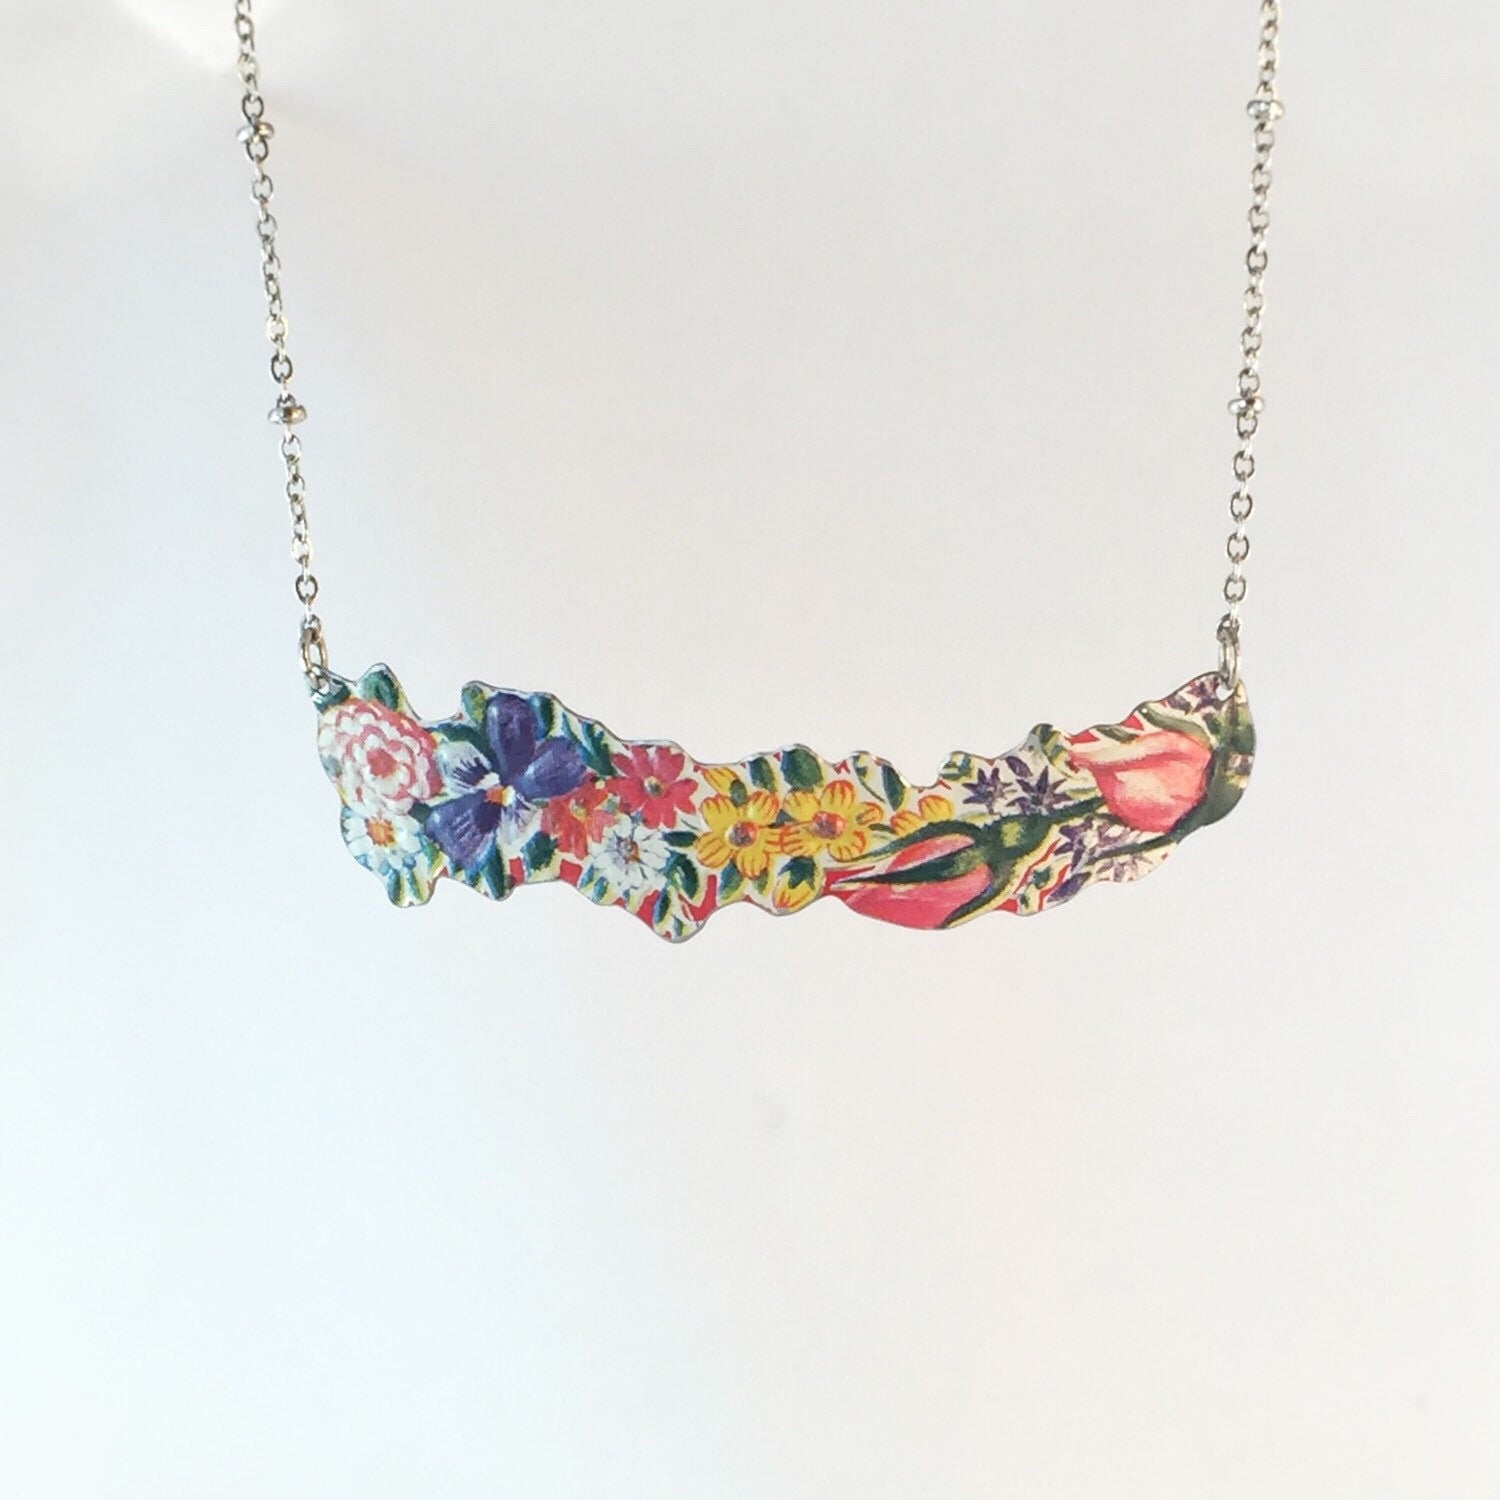 Women's Necklace Tin Jewelry - Vintage Flower Bar Necklace